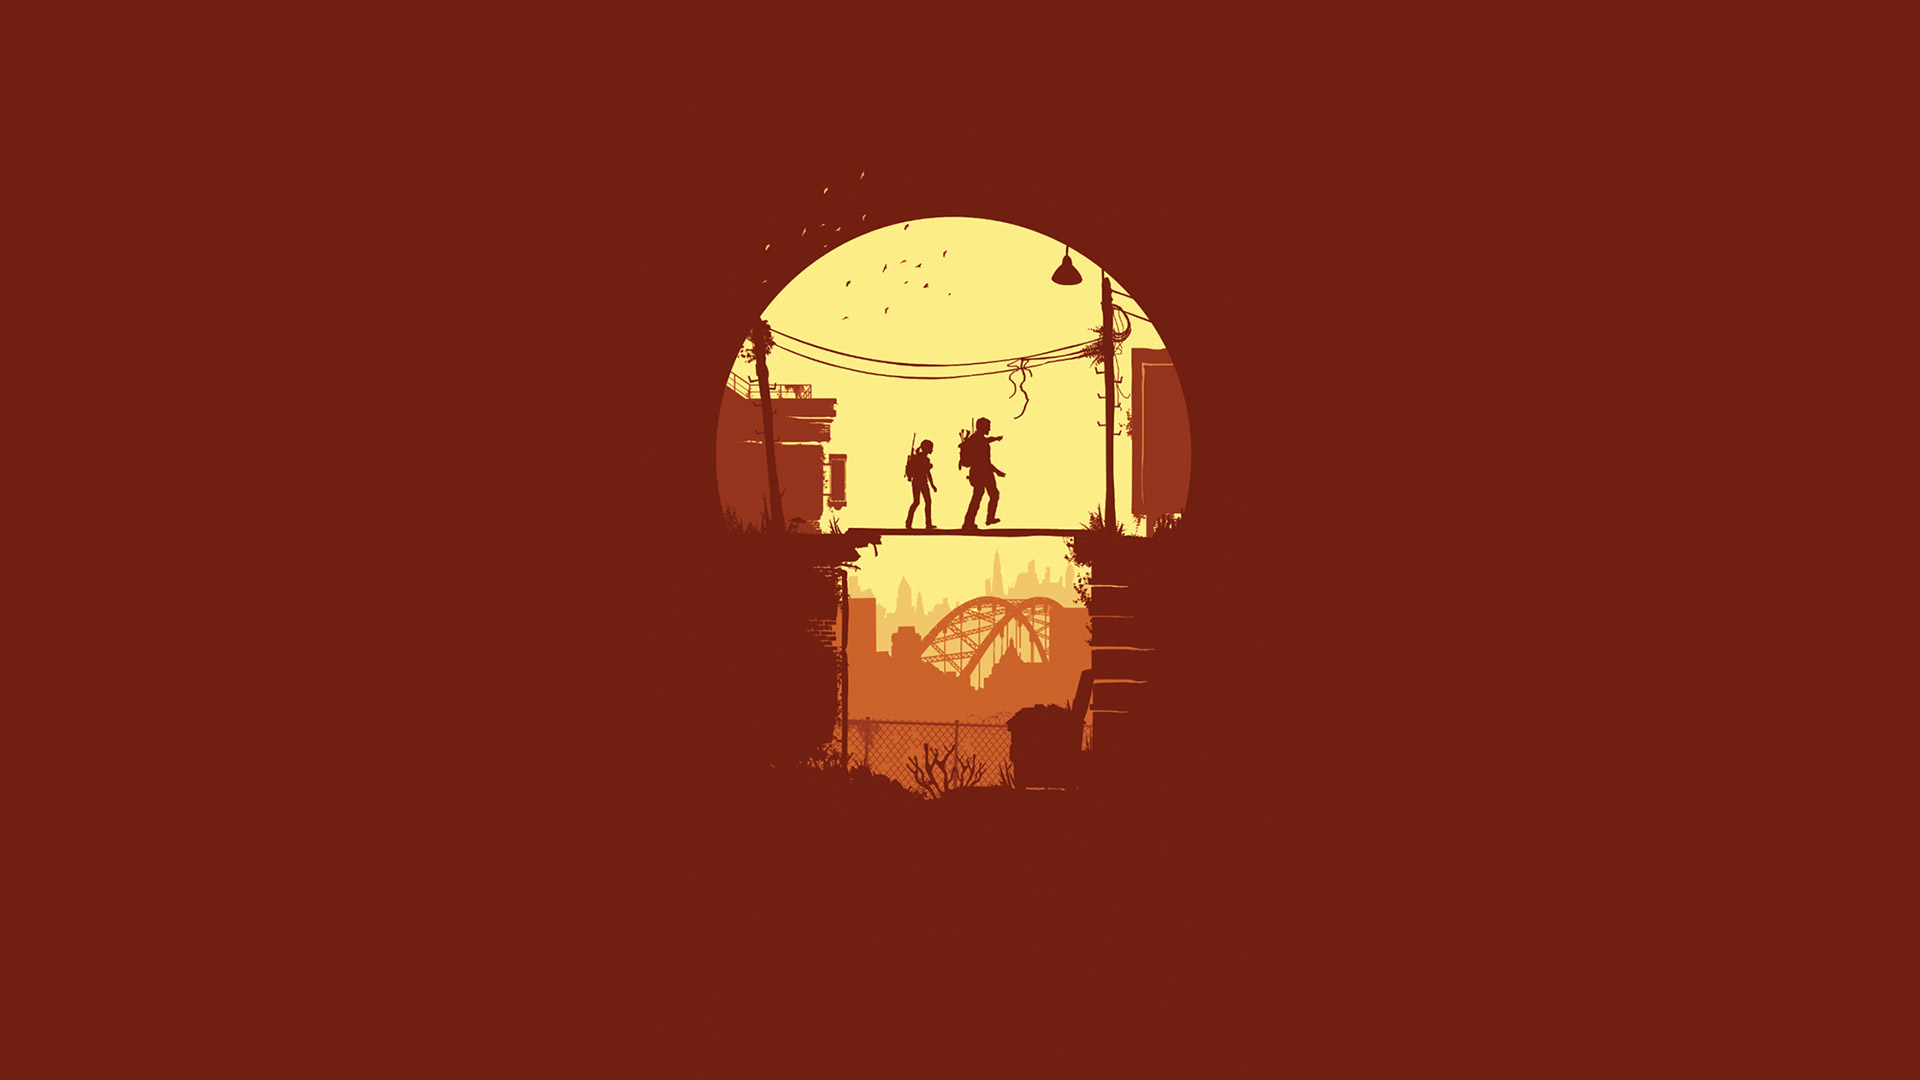 Free The Last of Us Wallpaper in 1920x1080